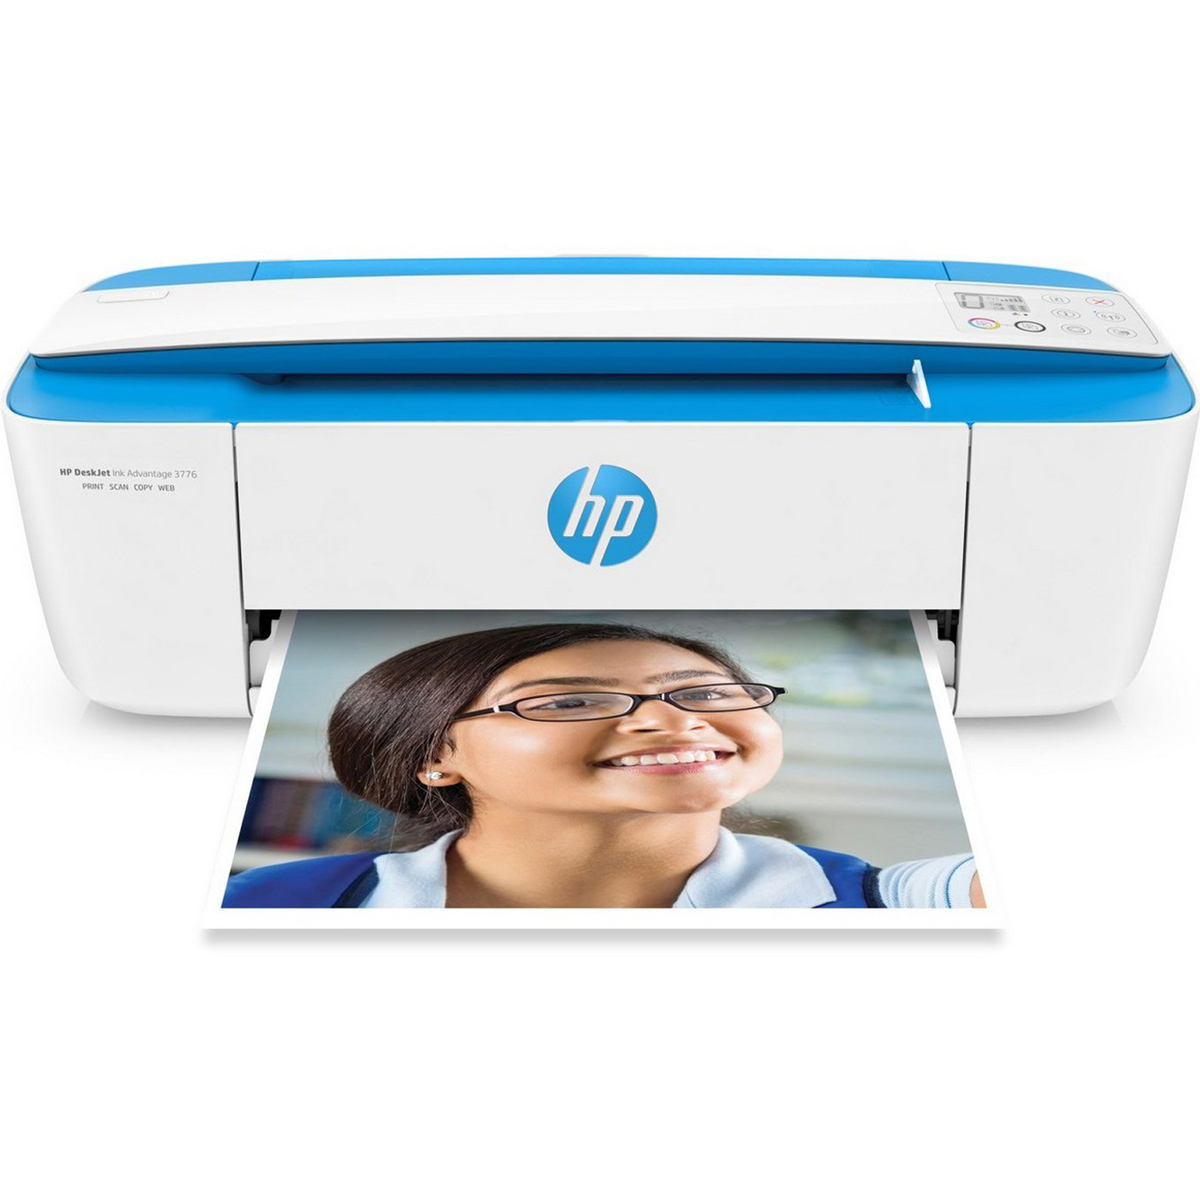 Buy HP DeskJet Ink Advantage 3775 All-in-One Printer - Ink